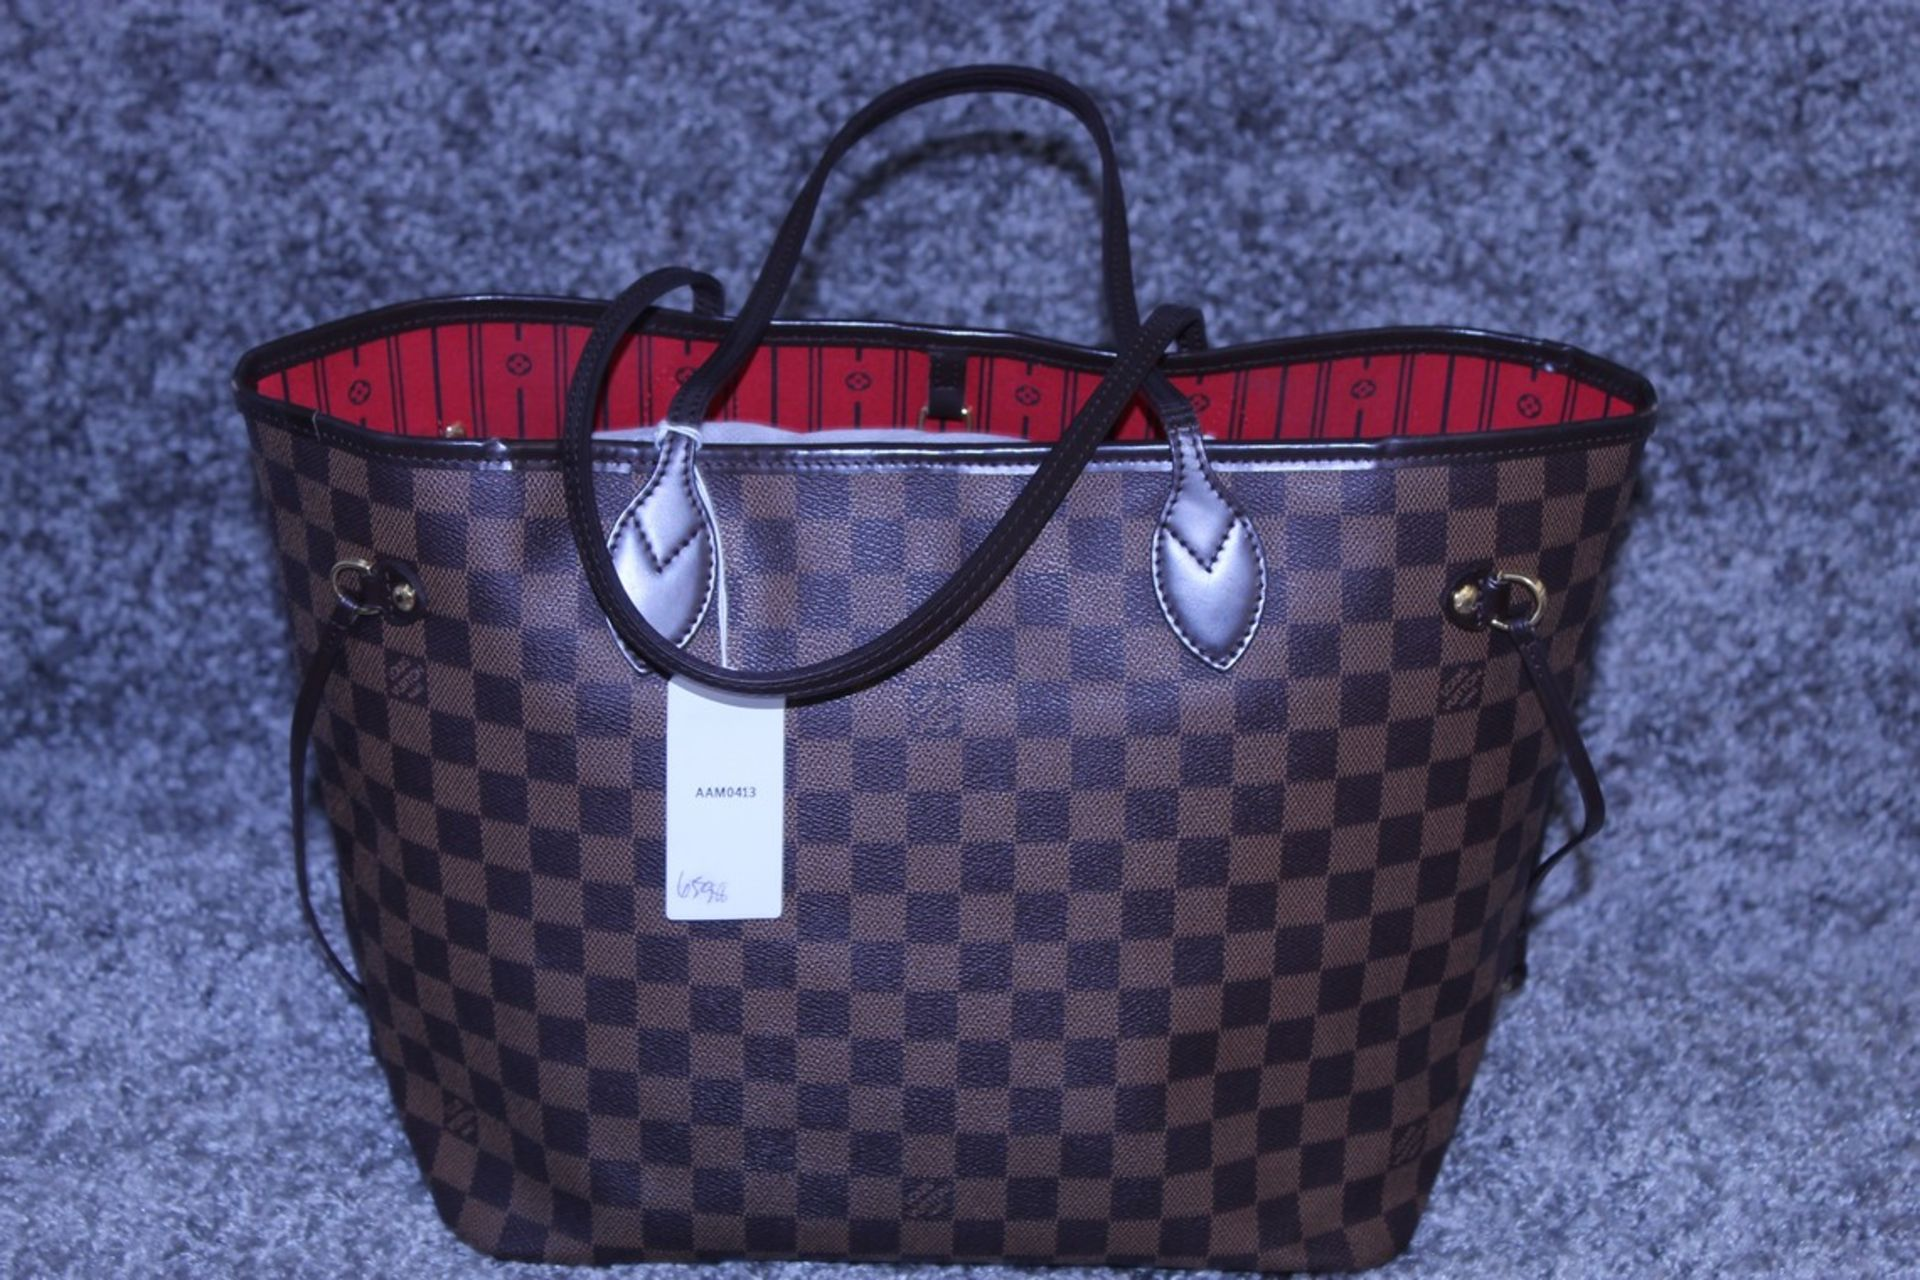 RRP £1300 Louis Vuitton Neverfull Shoulder Bag In Brown Coated Canvas With Vachetta Handles ( - Image 2 of 5